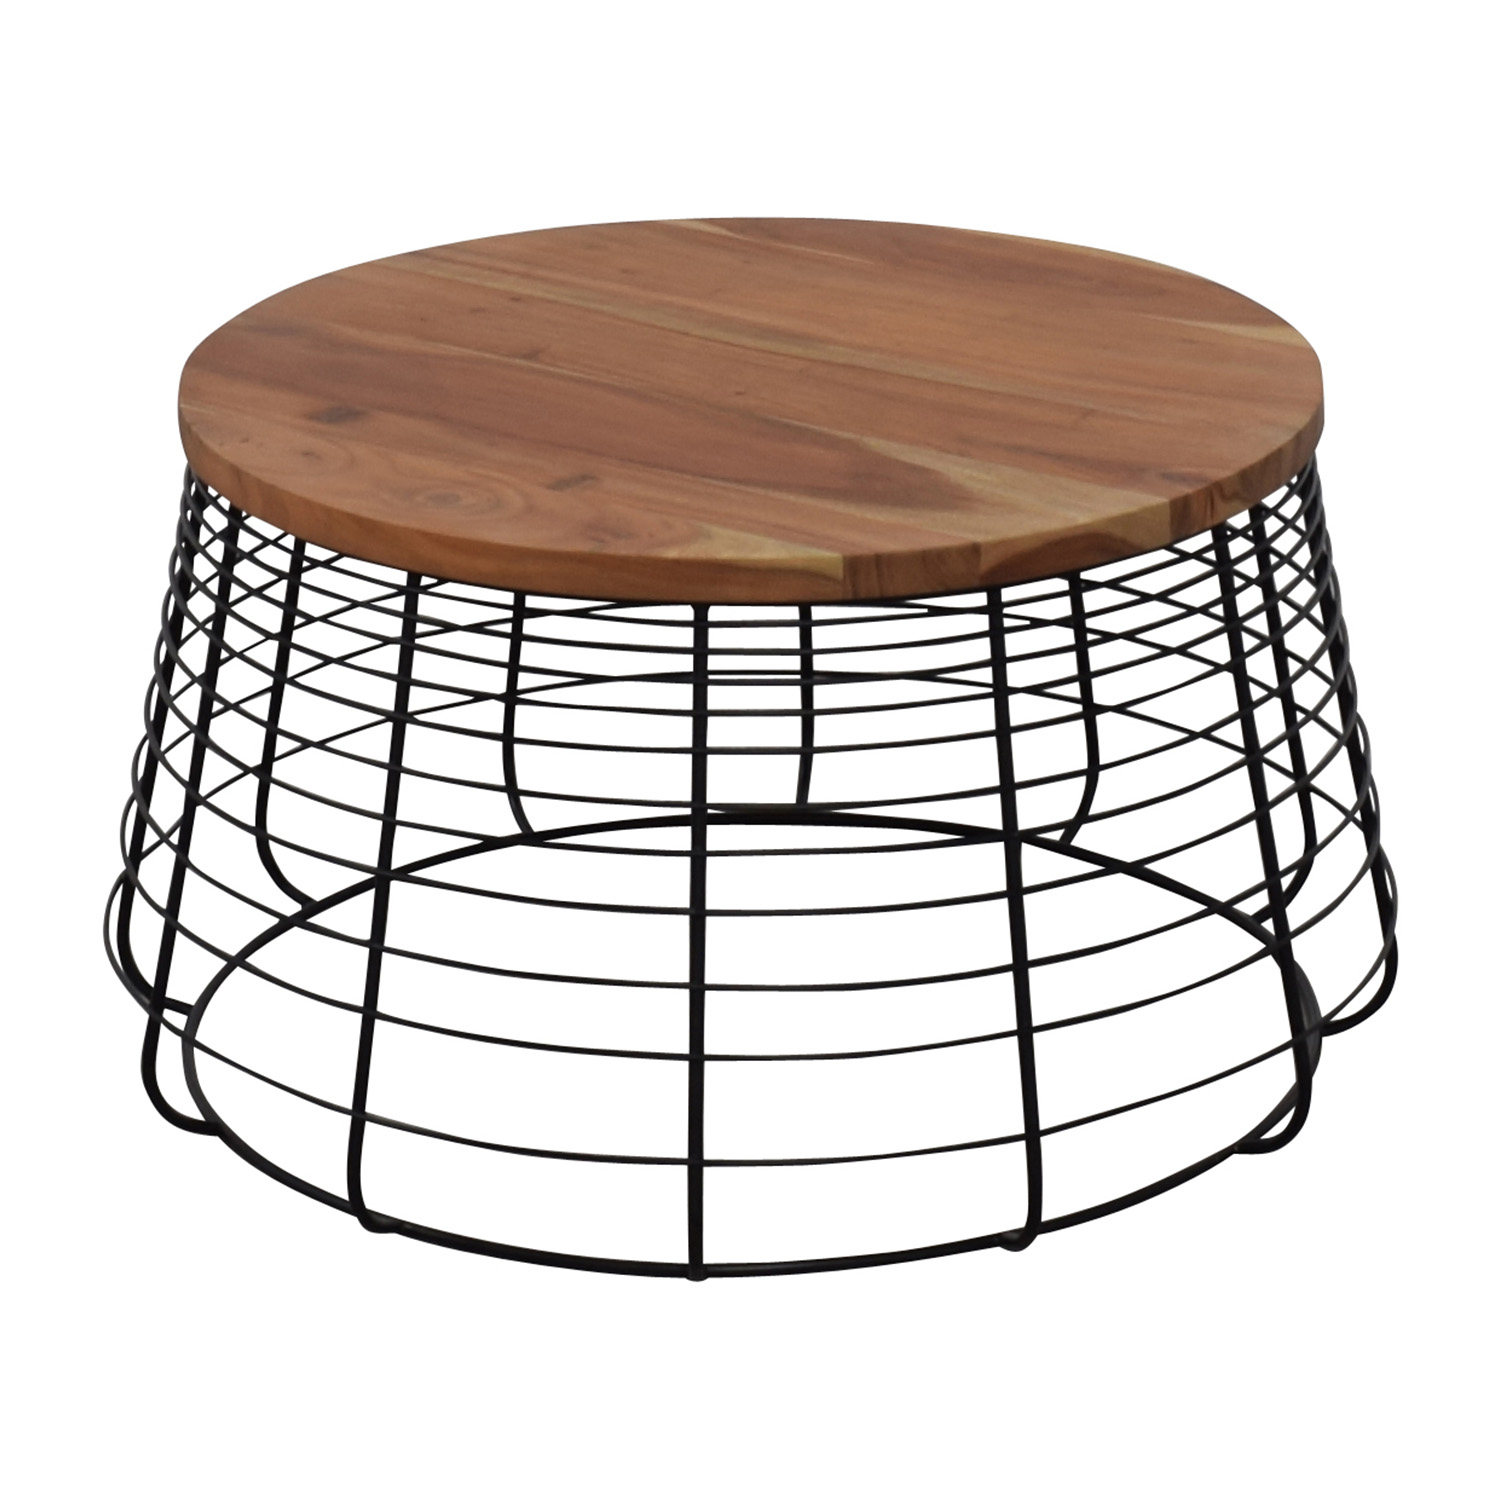 72 off cb2 cb2 round wire coffee table tables for Wire coffee table